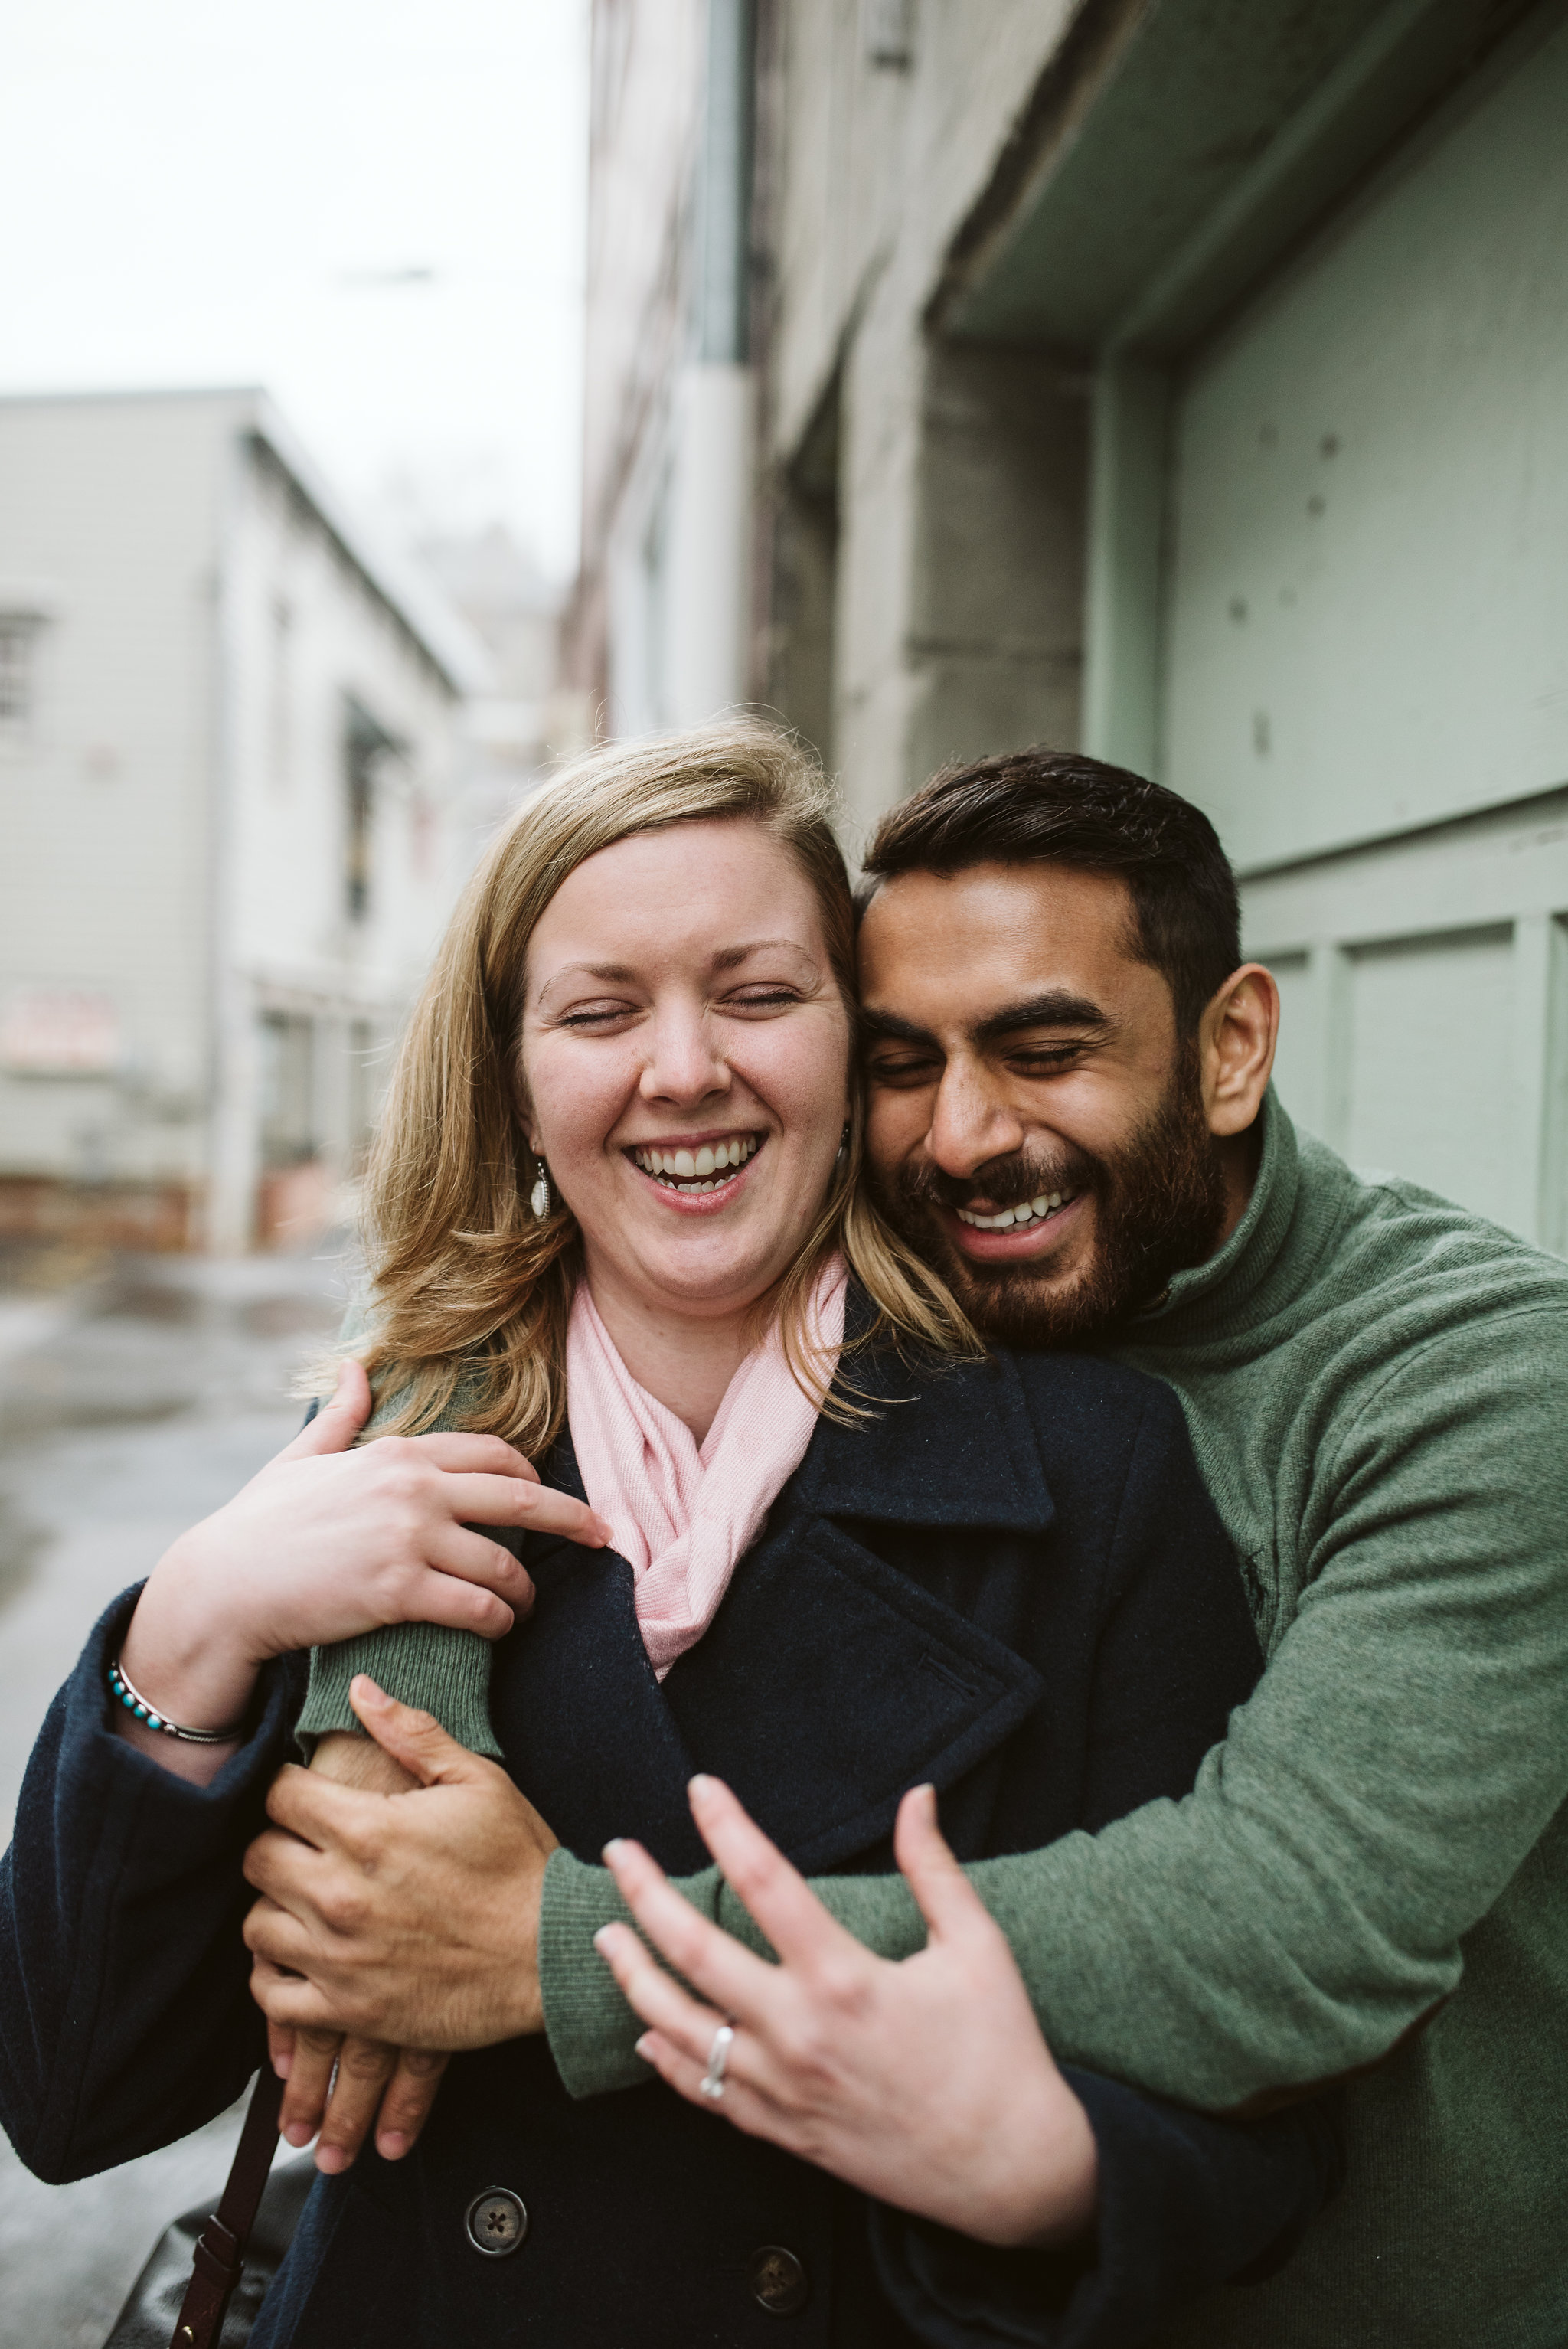 Engagement Photos, Rainy, Ellicott City, Maryland Wedding Photographer, Winter, Overhills Mansion, Indian American, Historical, Classic, Traditional, Outdoor, Bride and Groom Laughing